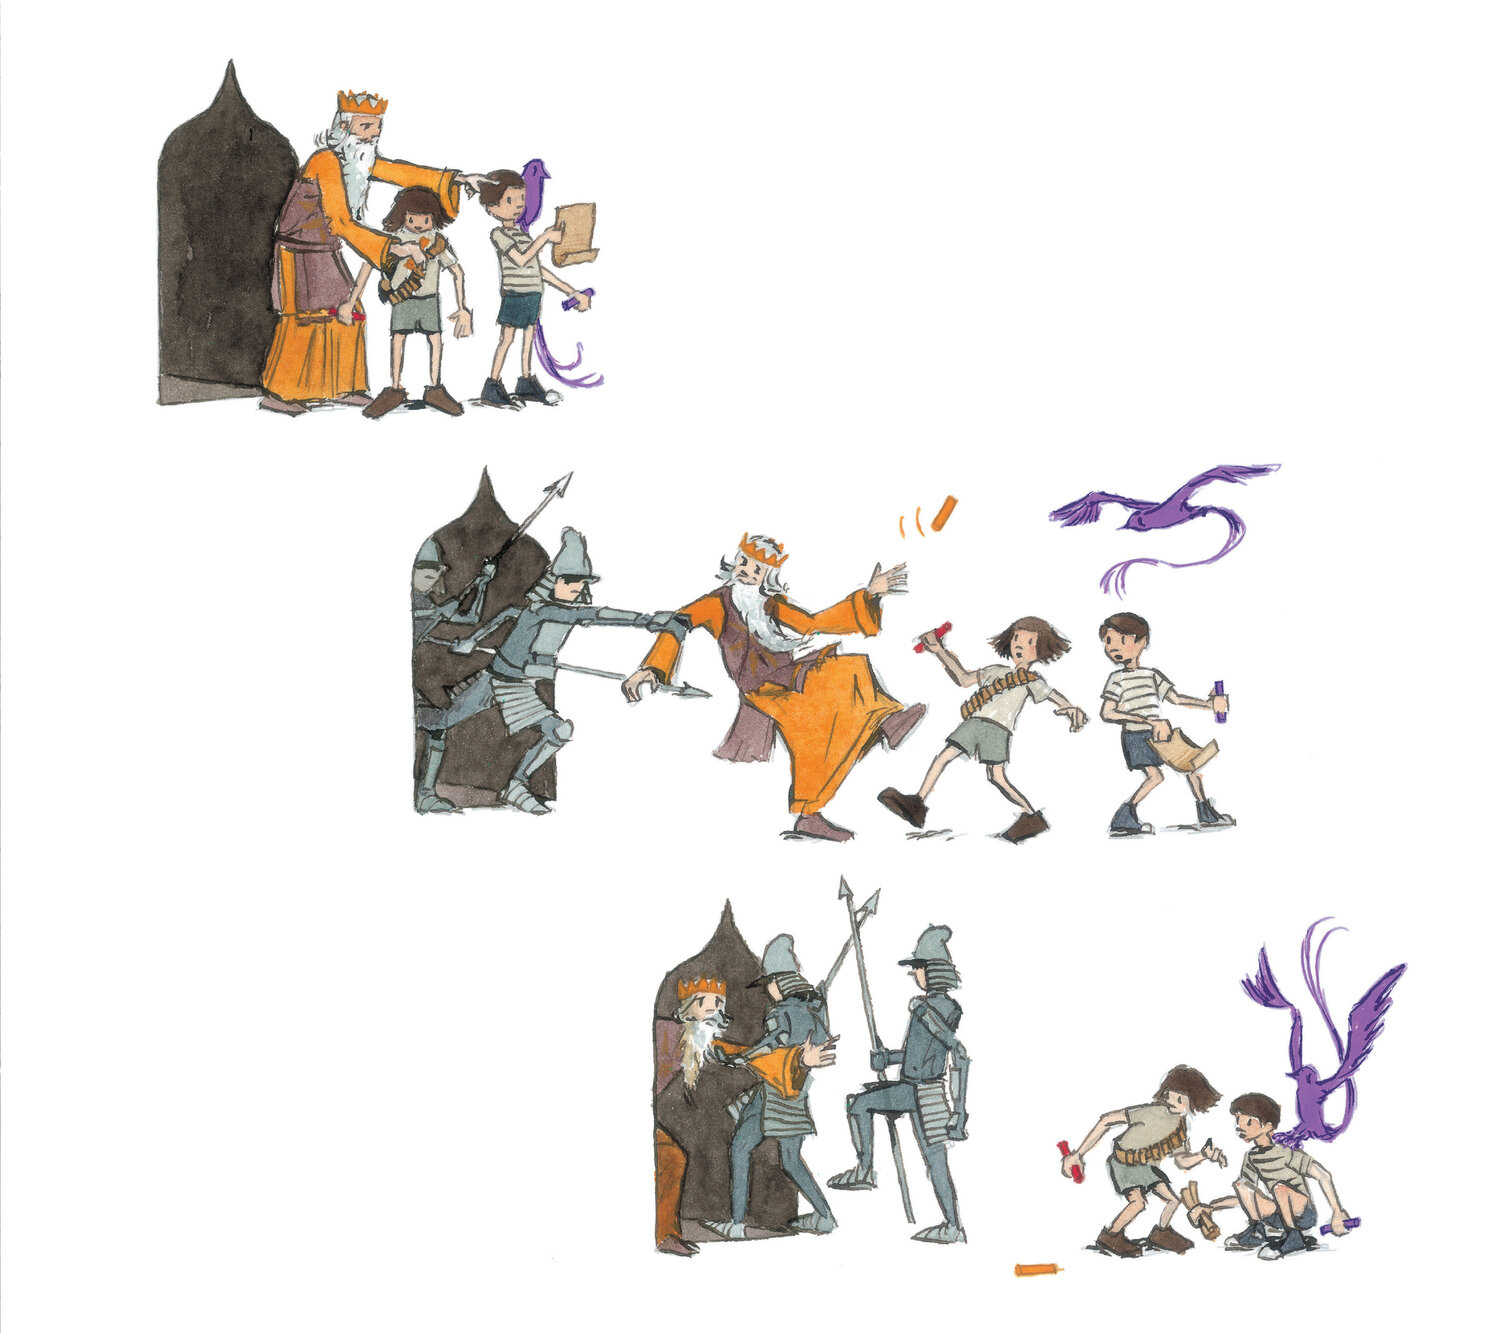 Quest. Copyright 2014 by Aaron Becker. Reproduced by permission of the publisher, Candlewick Press, Somerville, MA.